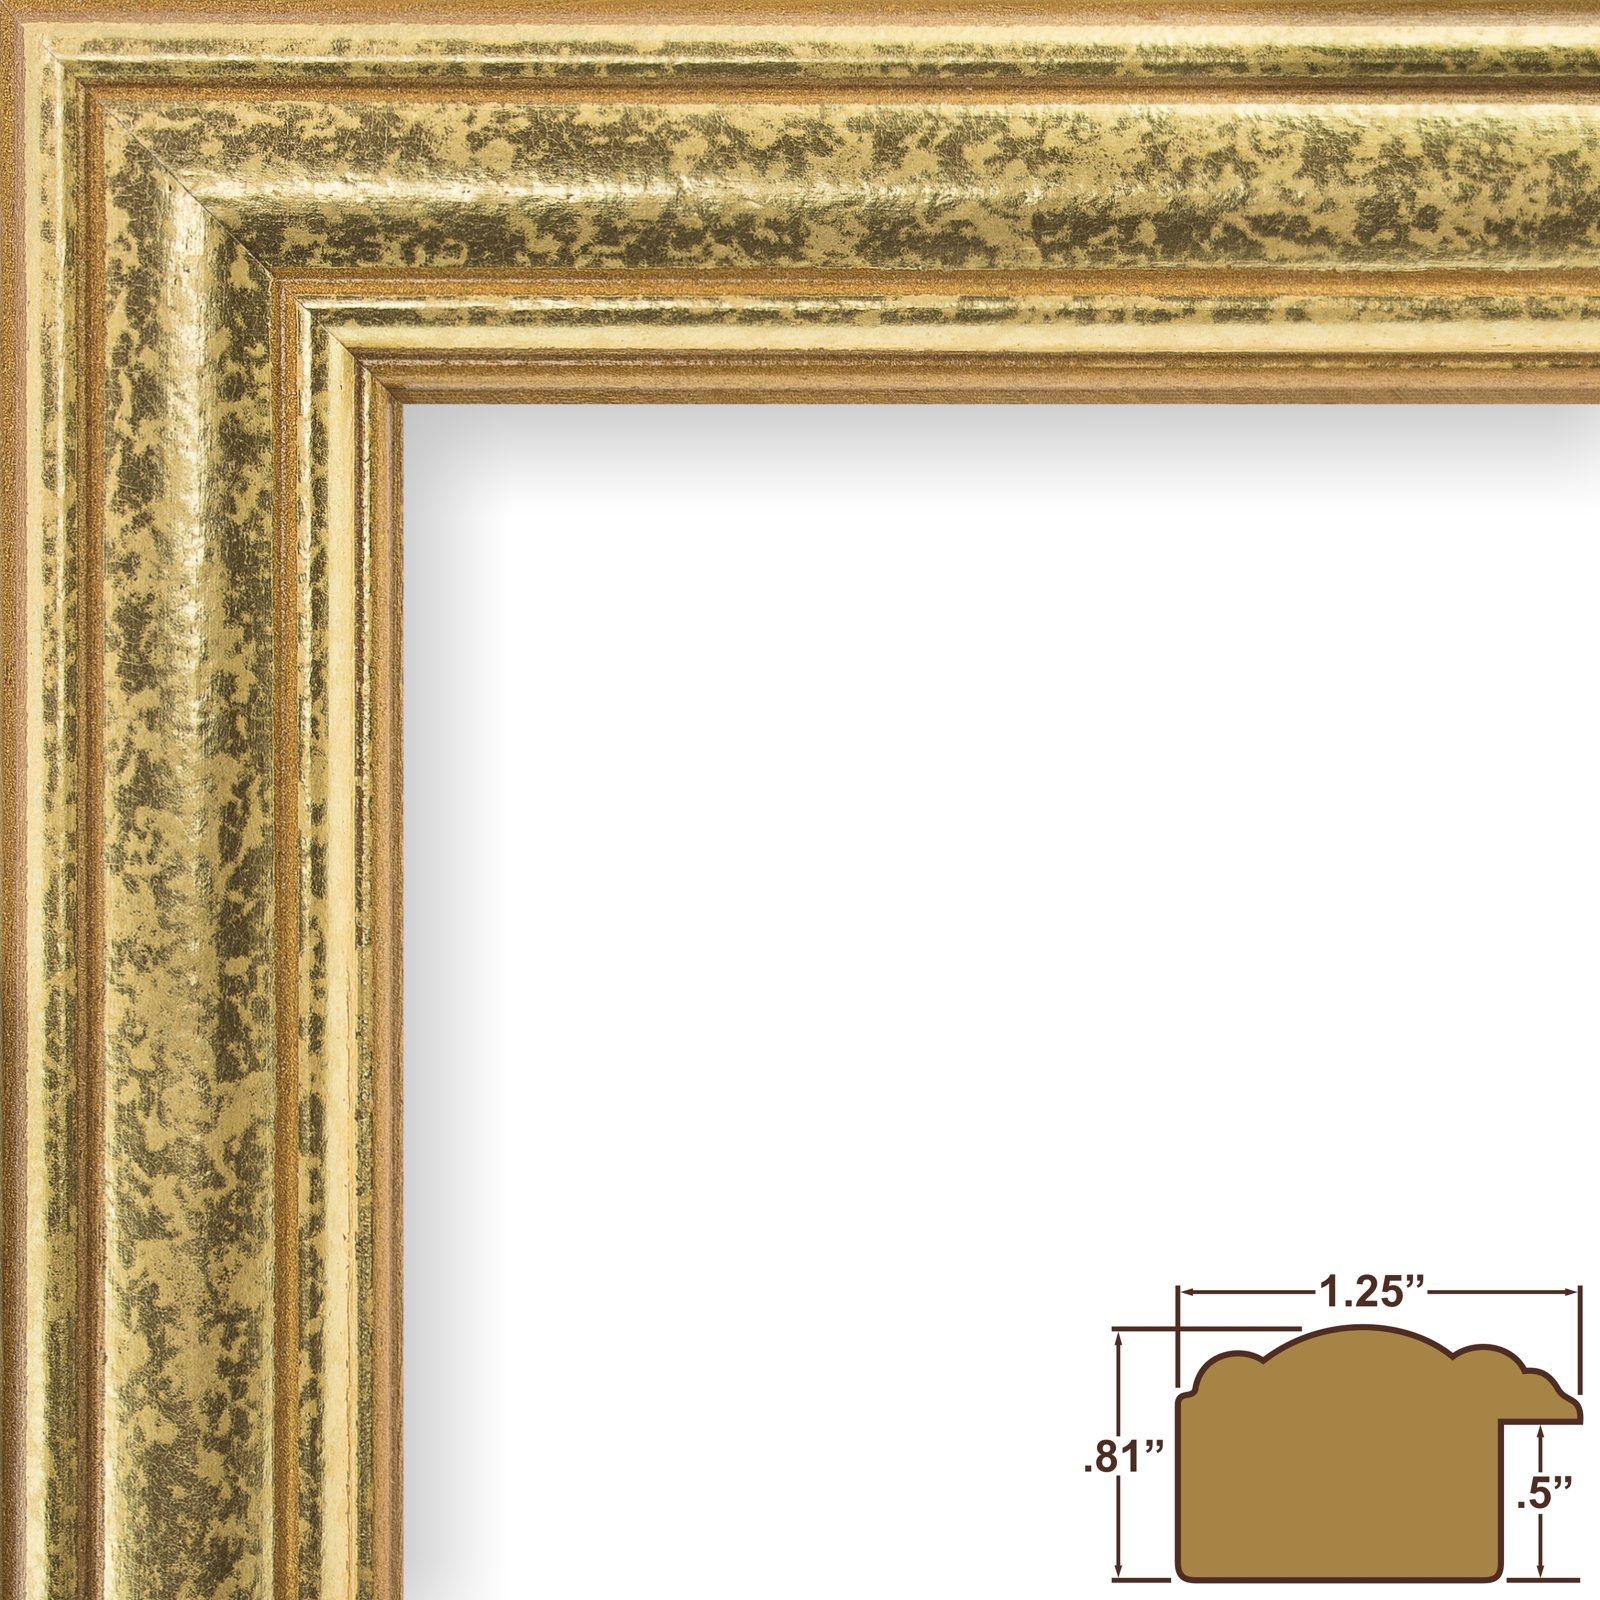 Craig frames goldstone vintage gold hardwood picture frame ebay 59945000 frame height jeuxipadfo Image collections